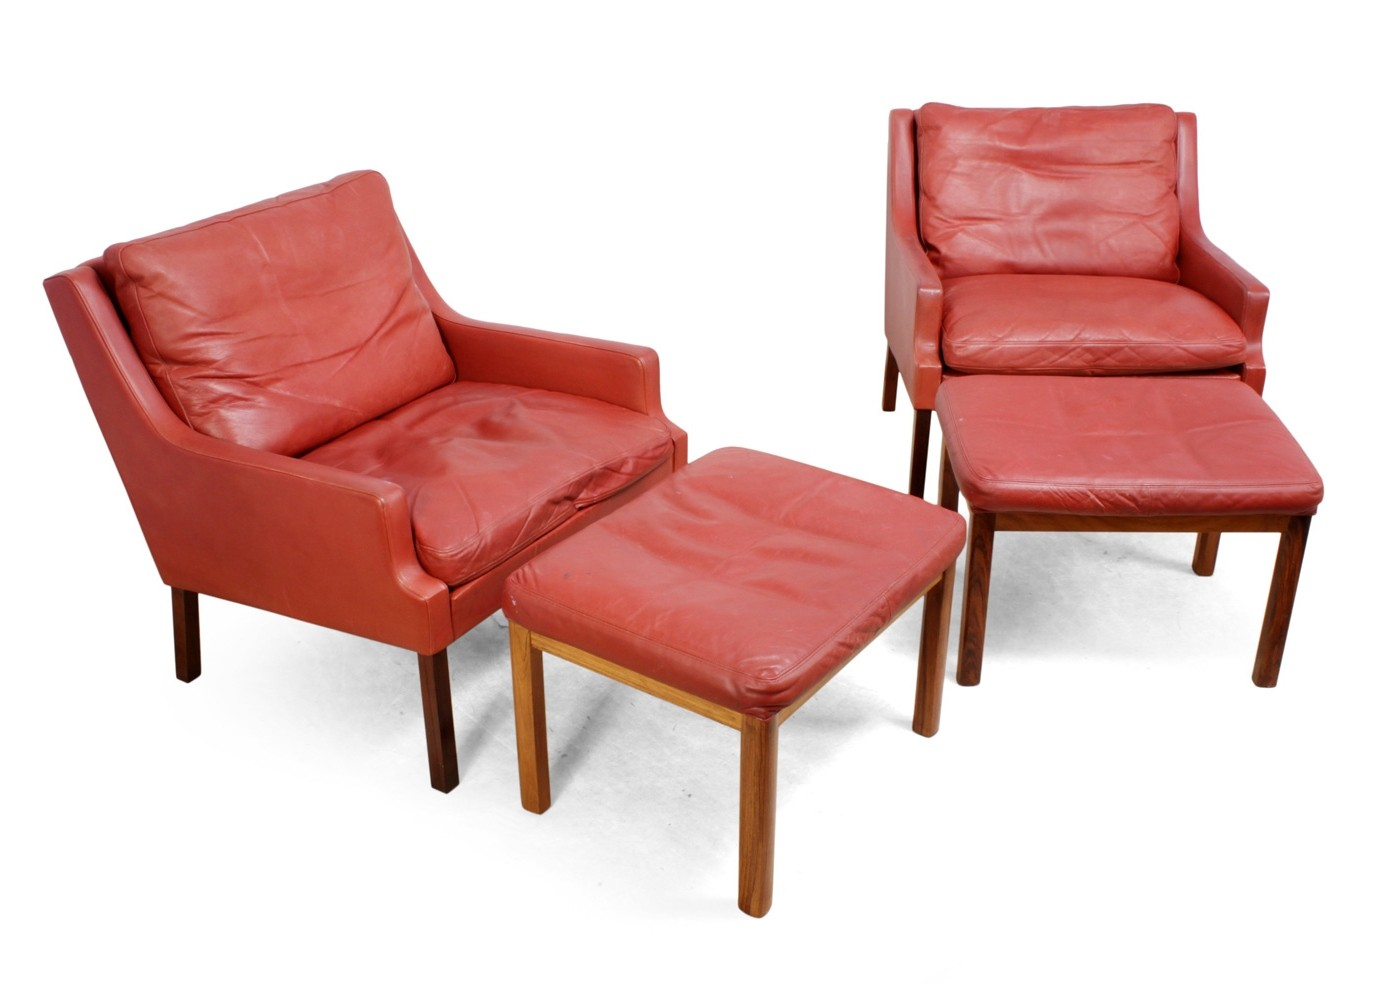 Cool Danish Lounge Chairs By Johnny Sorensen In Red Leather With Stools Unemploymentrelief Wooden Chair Designs For Living Room Unemploymentrelieforg